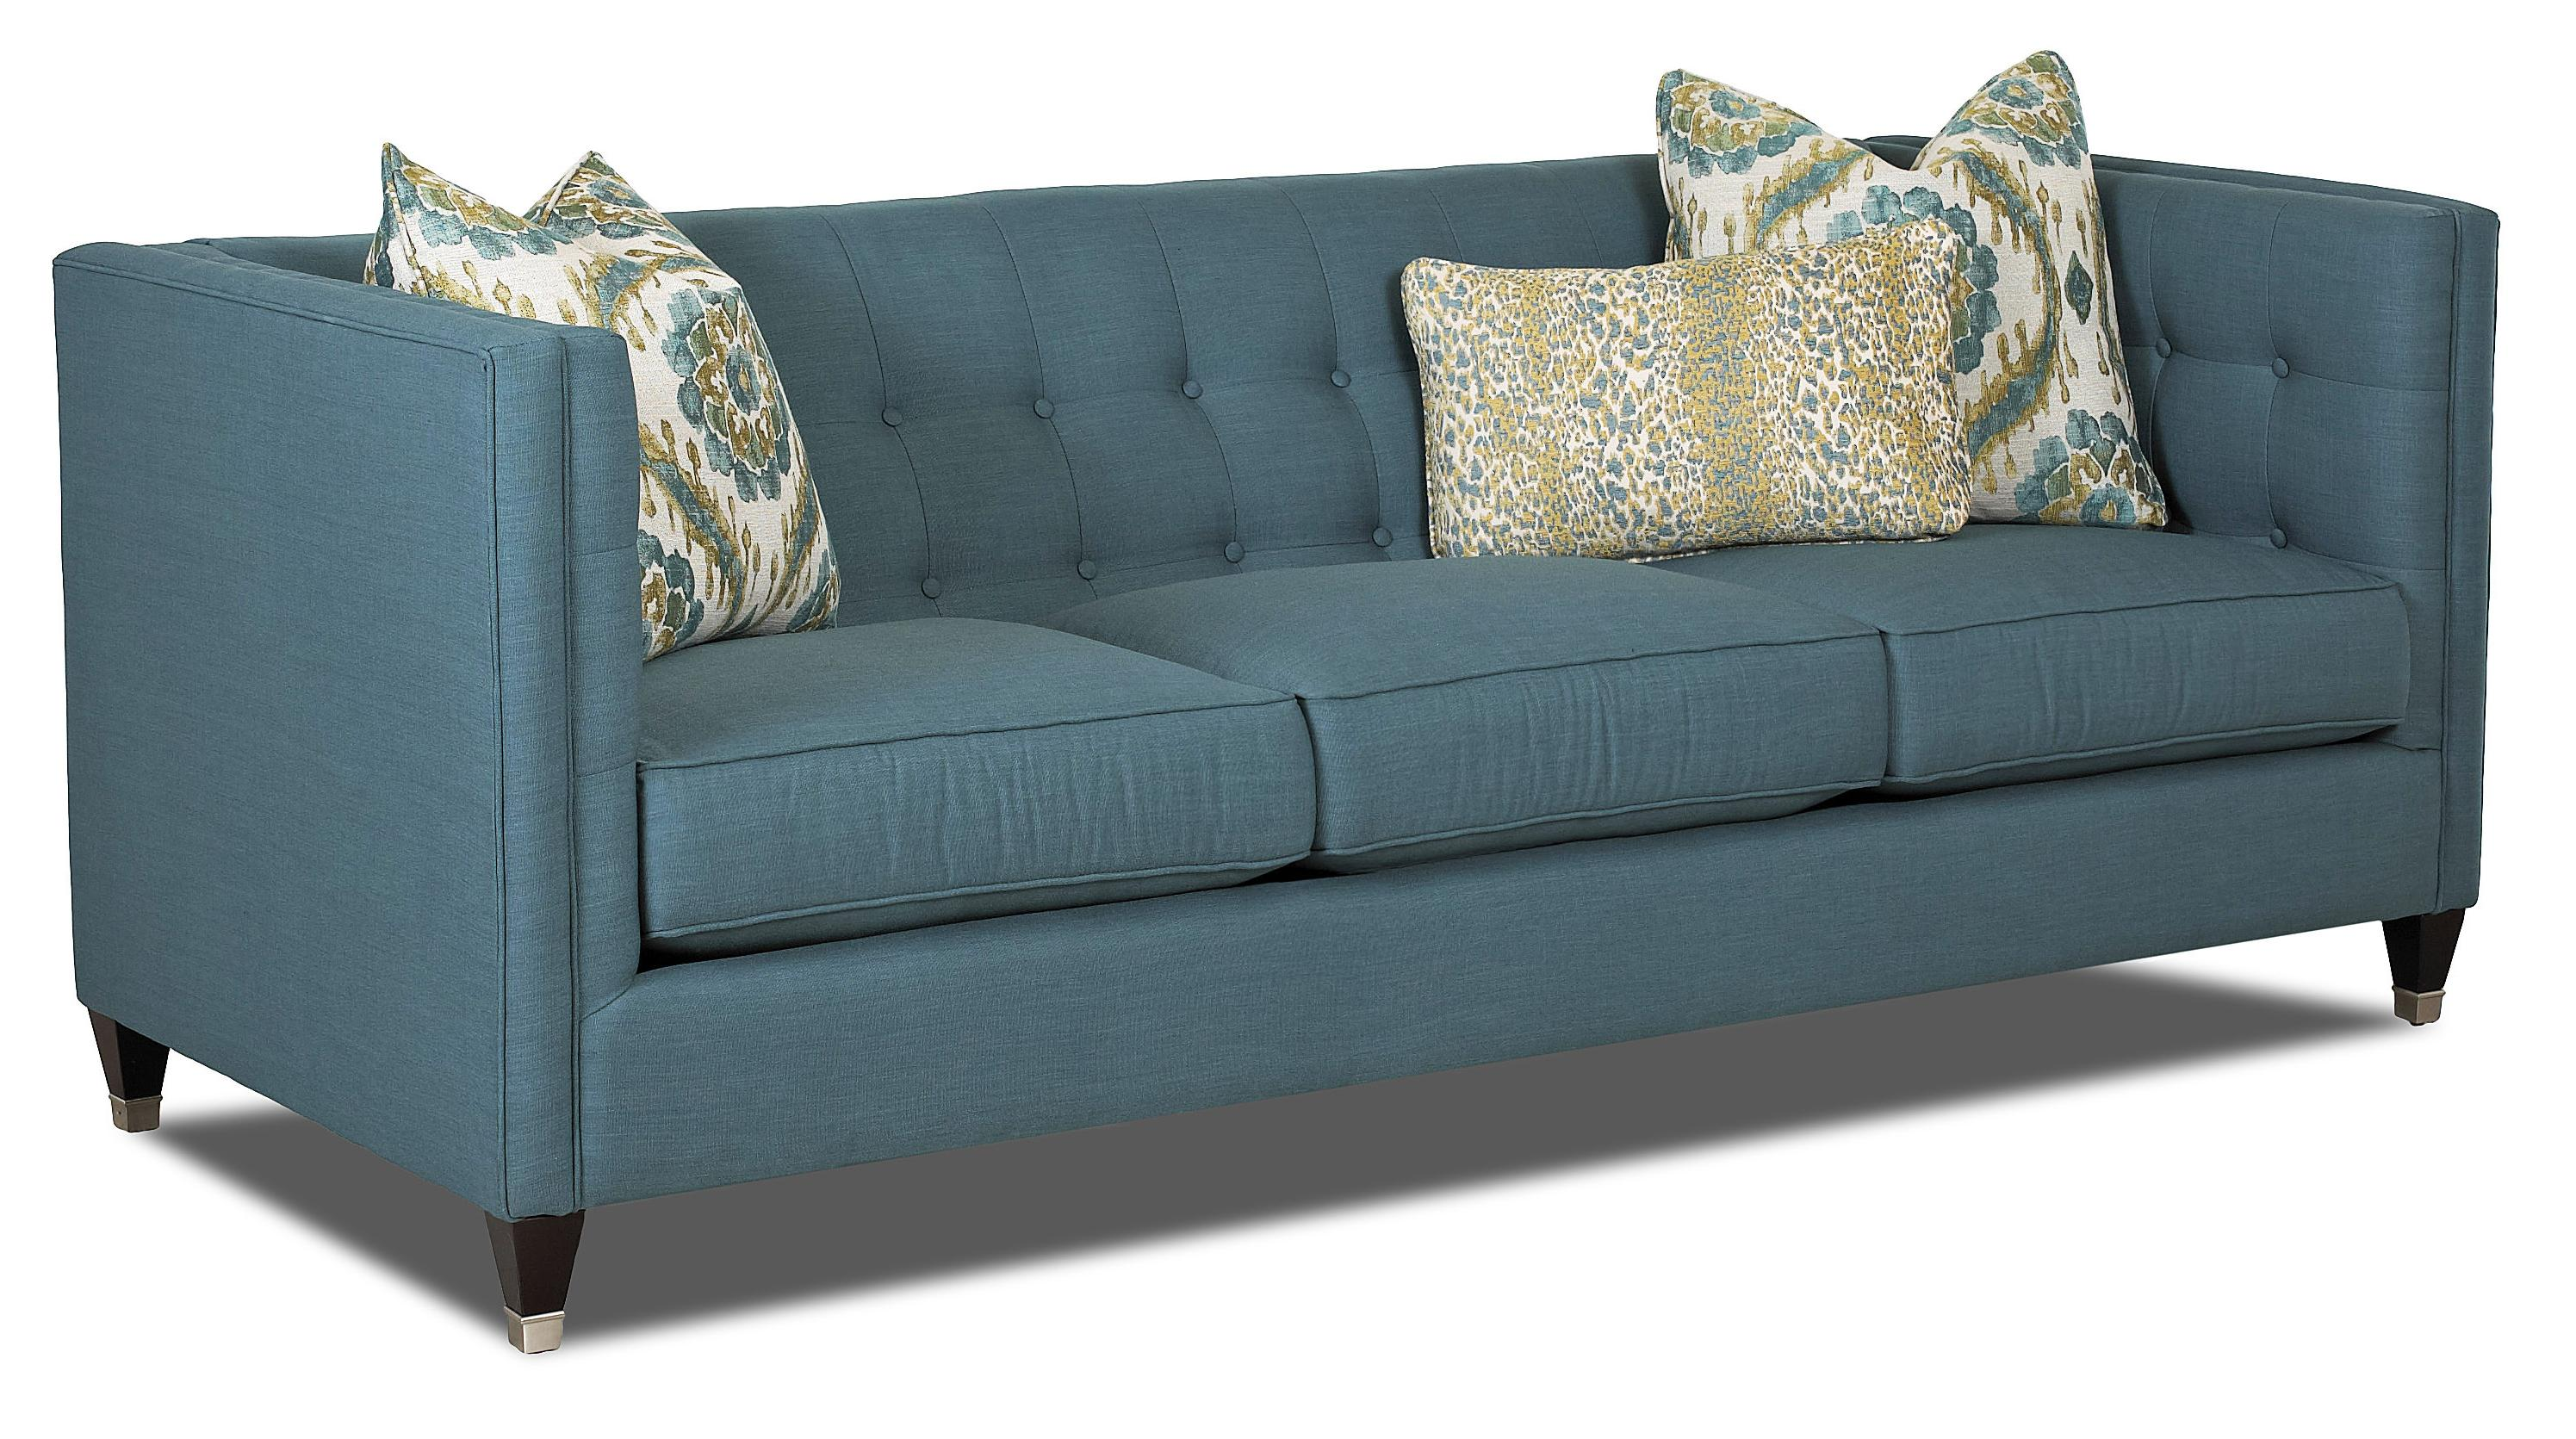 sectional ashley couch sofa furniture grey hodan small darcy com shaped chaise lounge sofas l